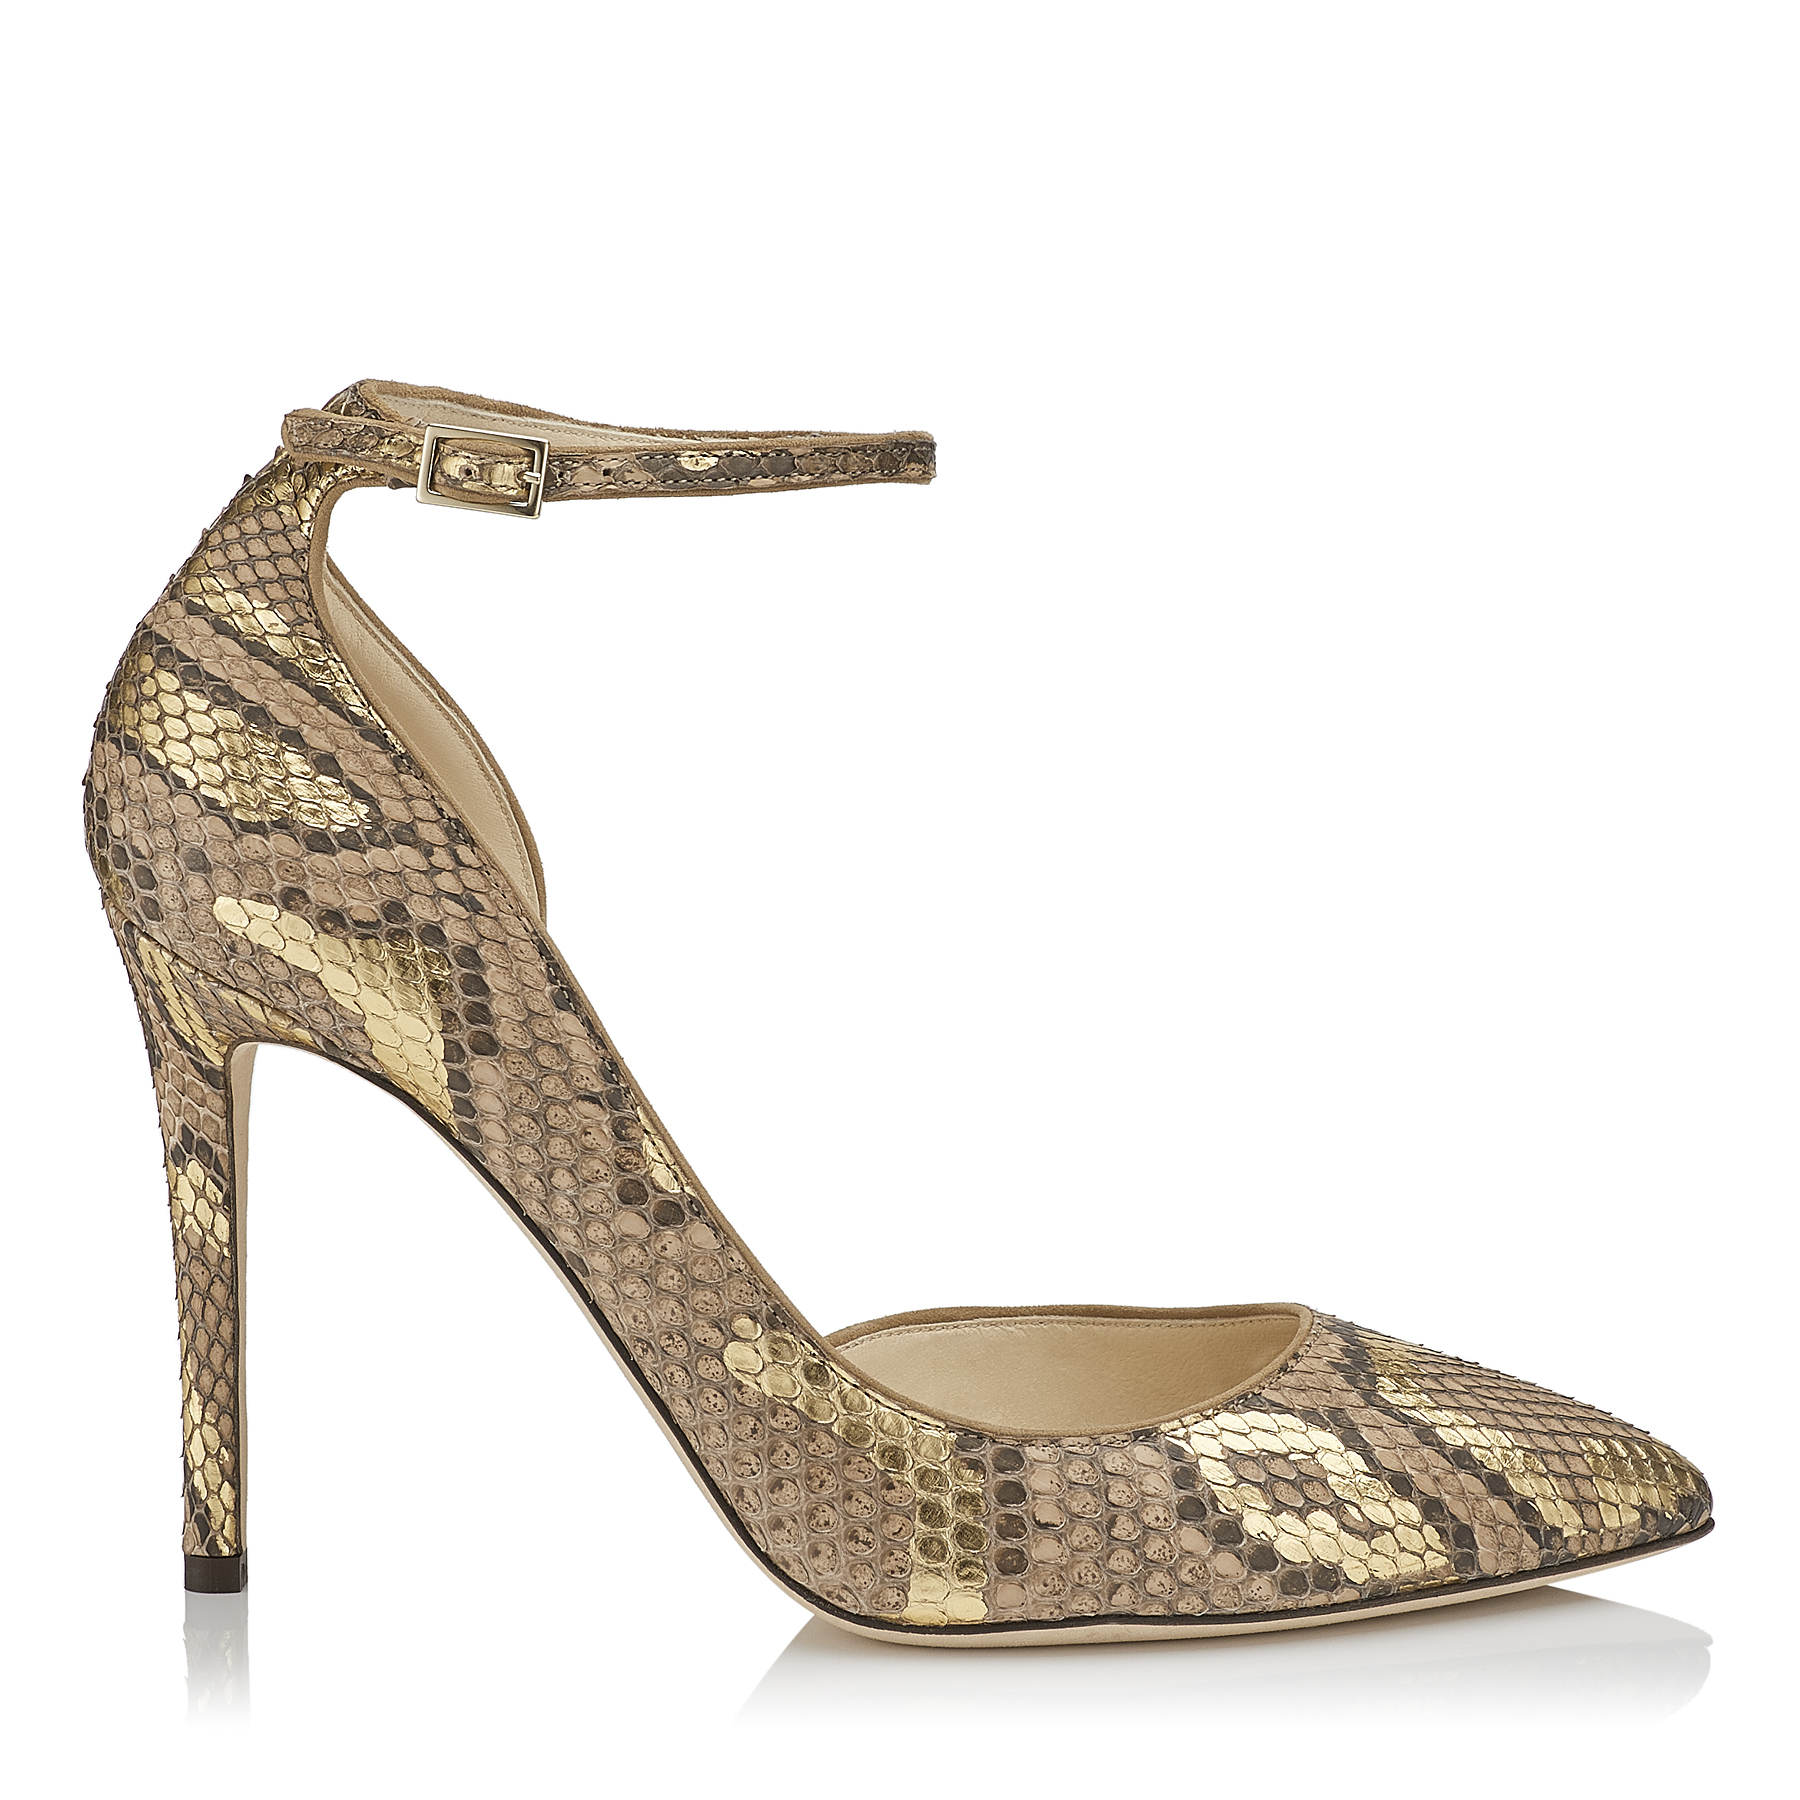 LUCY 100 Hazel and Gold Pointy Toe Metalised Python Pumps by Jimmy Choo